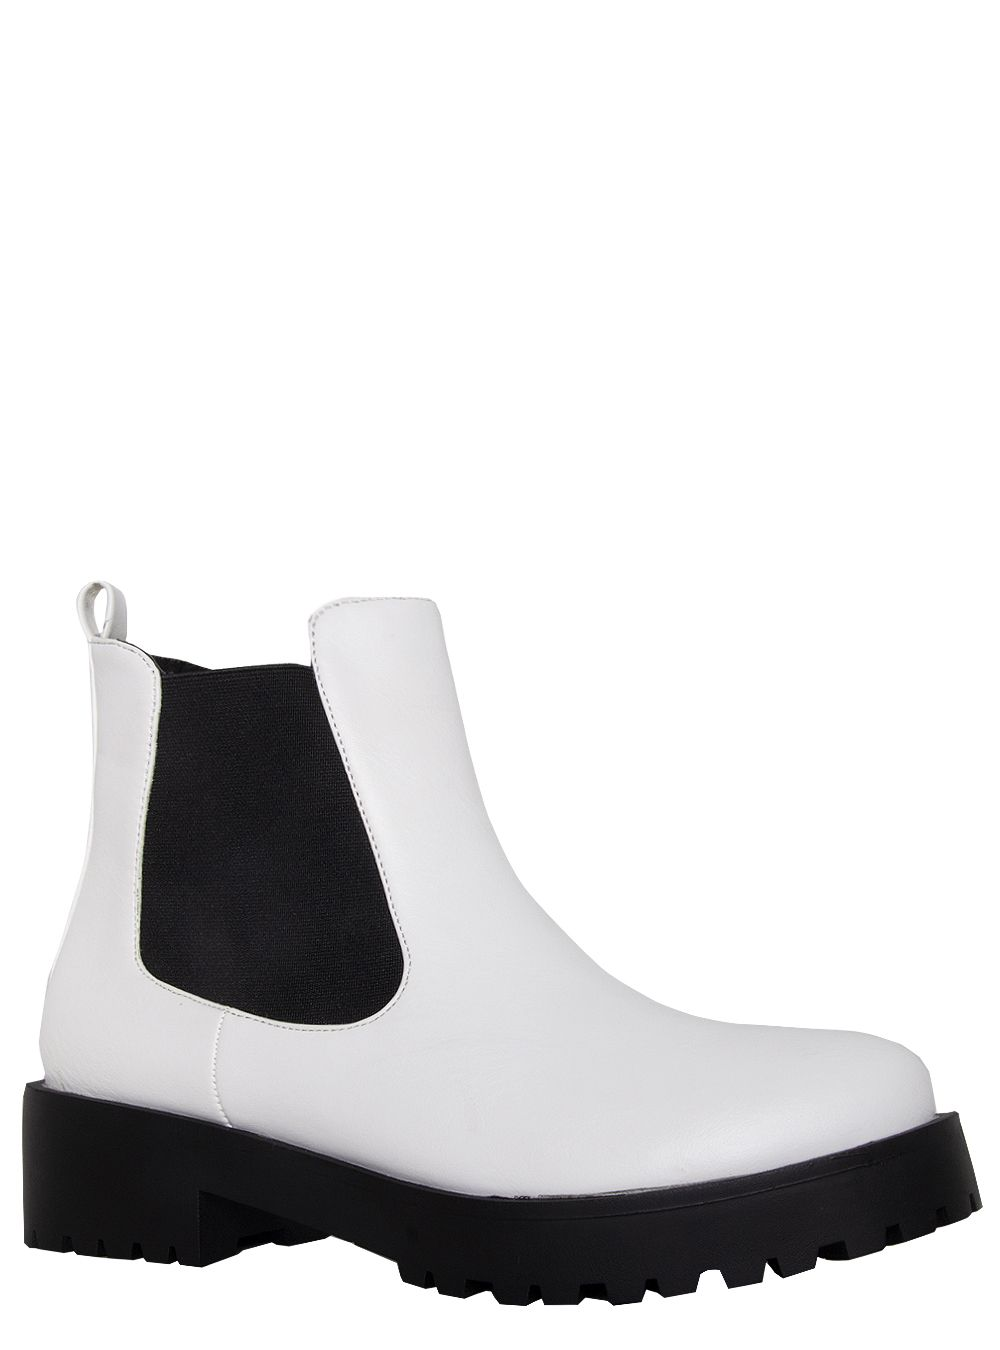 Toni White Cleated Flat Ankle Boots